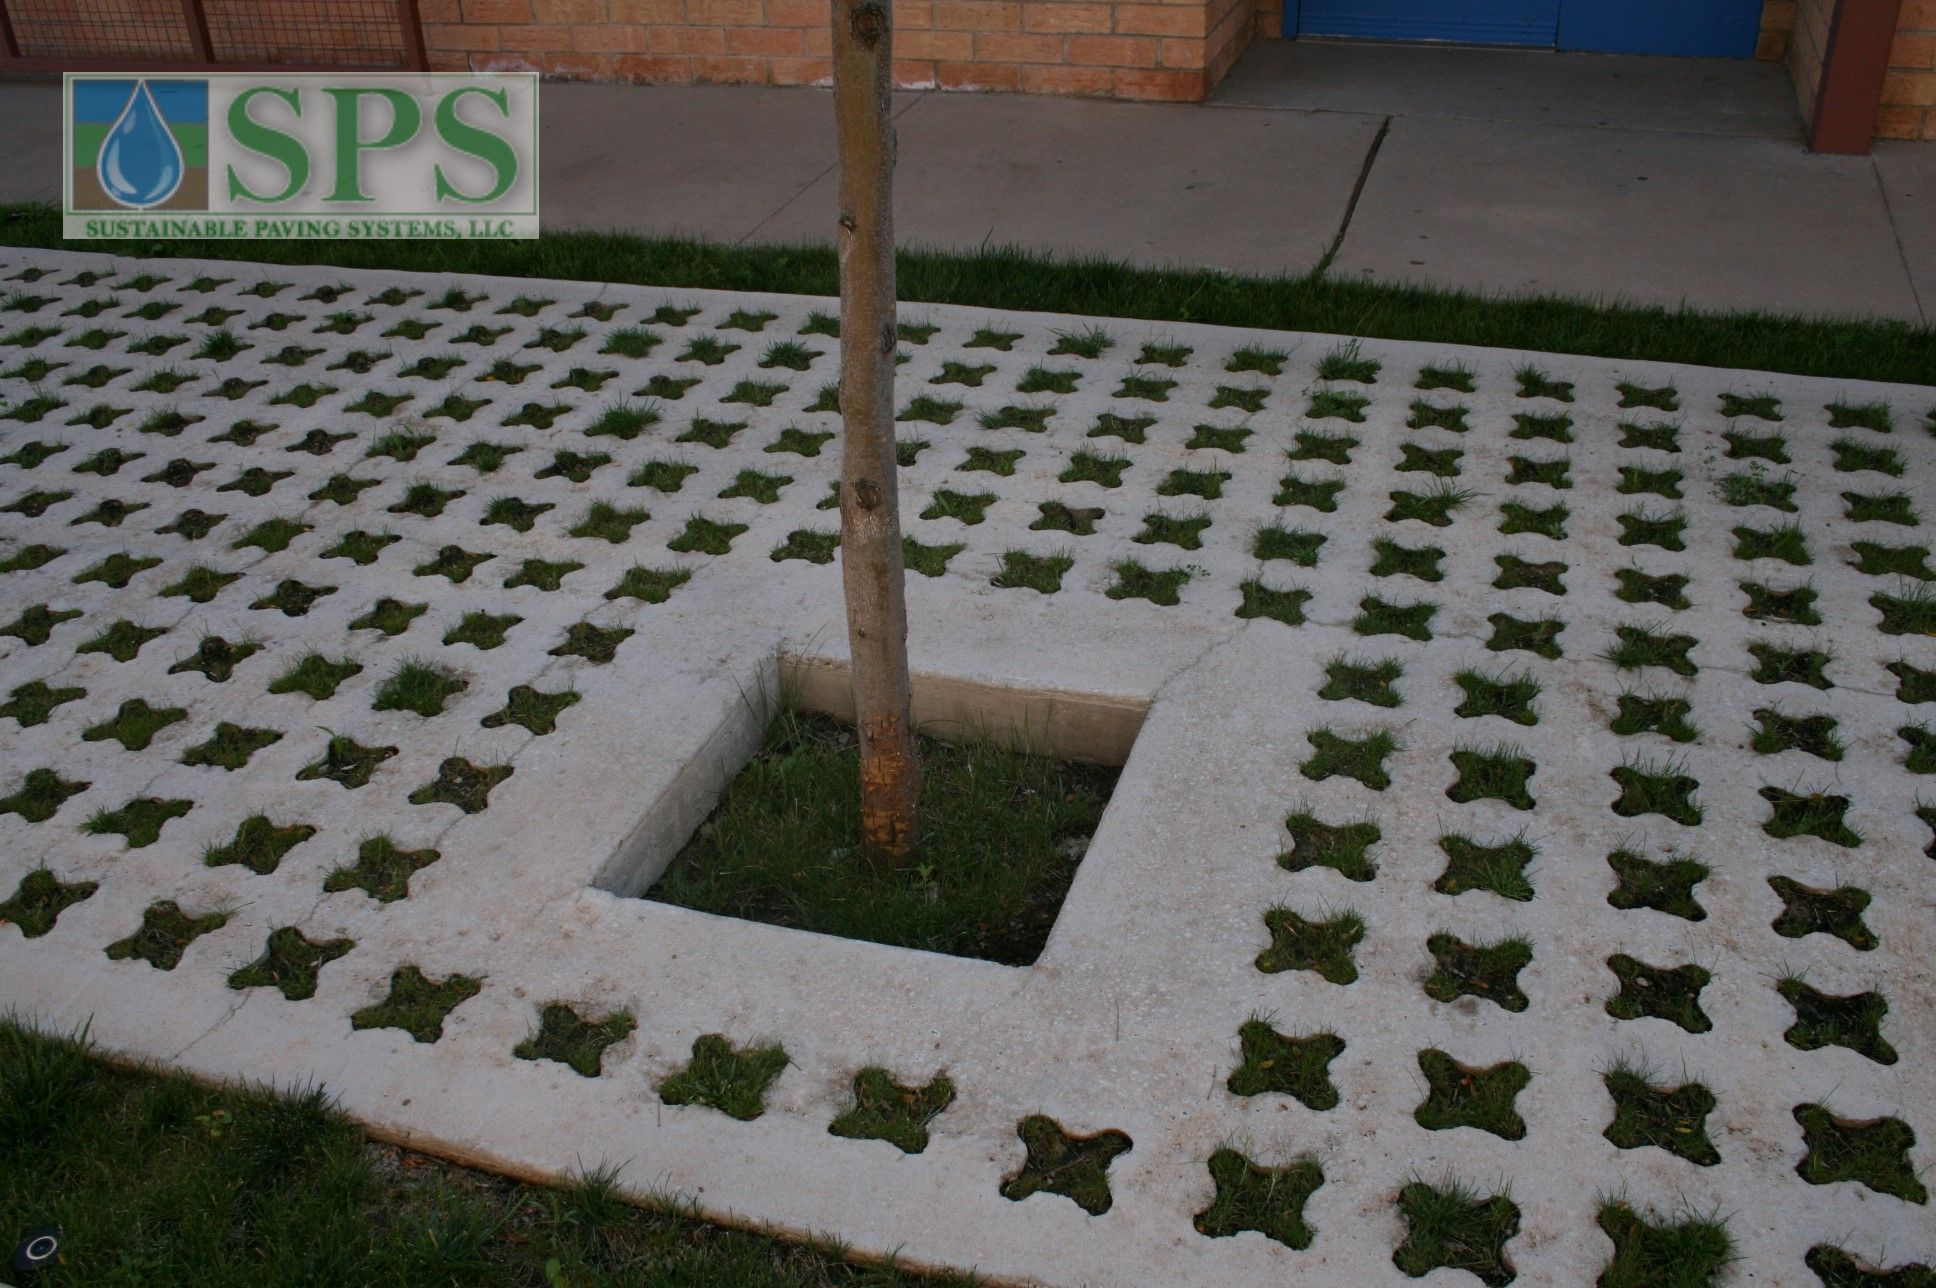 Grasscrete Partially Concealed System At St Mikes School View Of Courtyard Storm Water Management_02